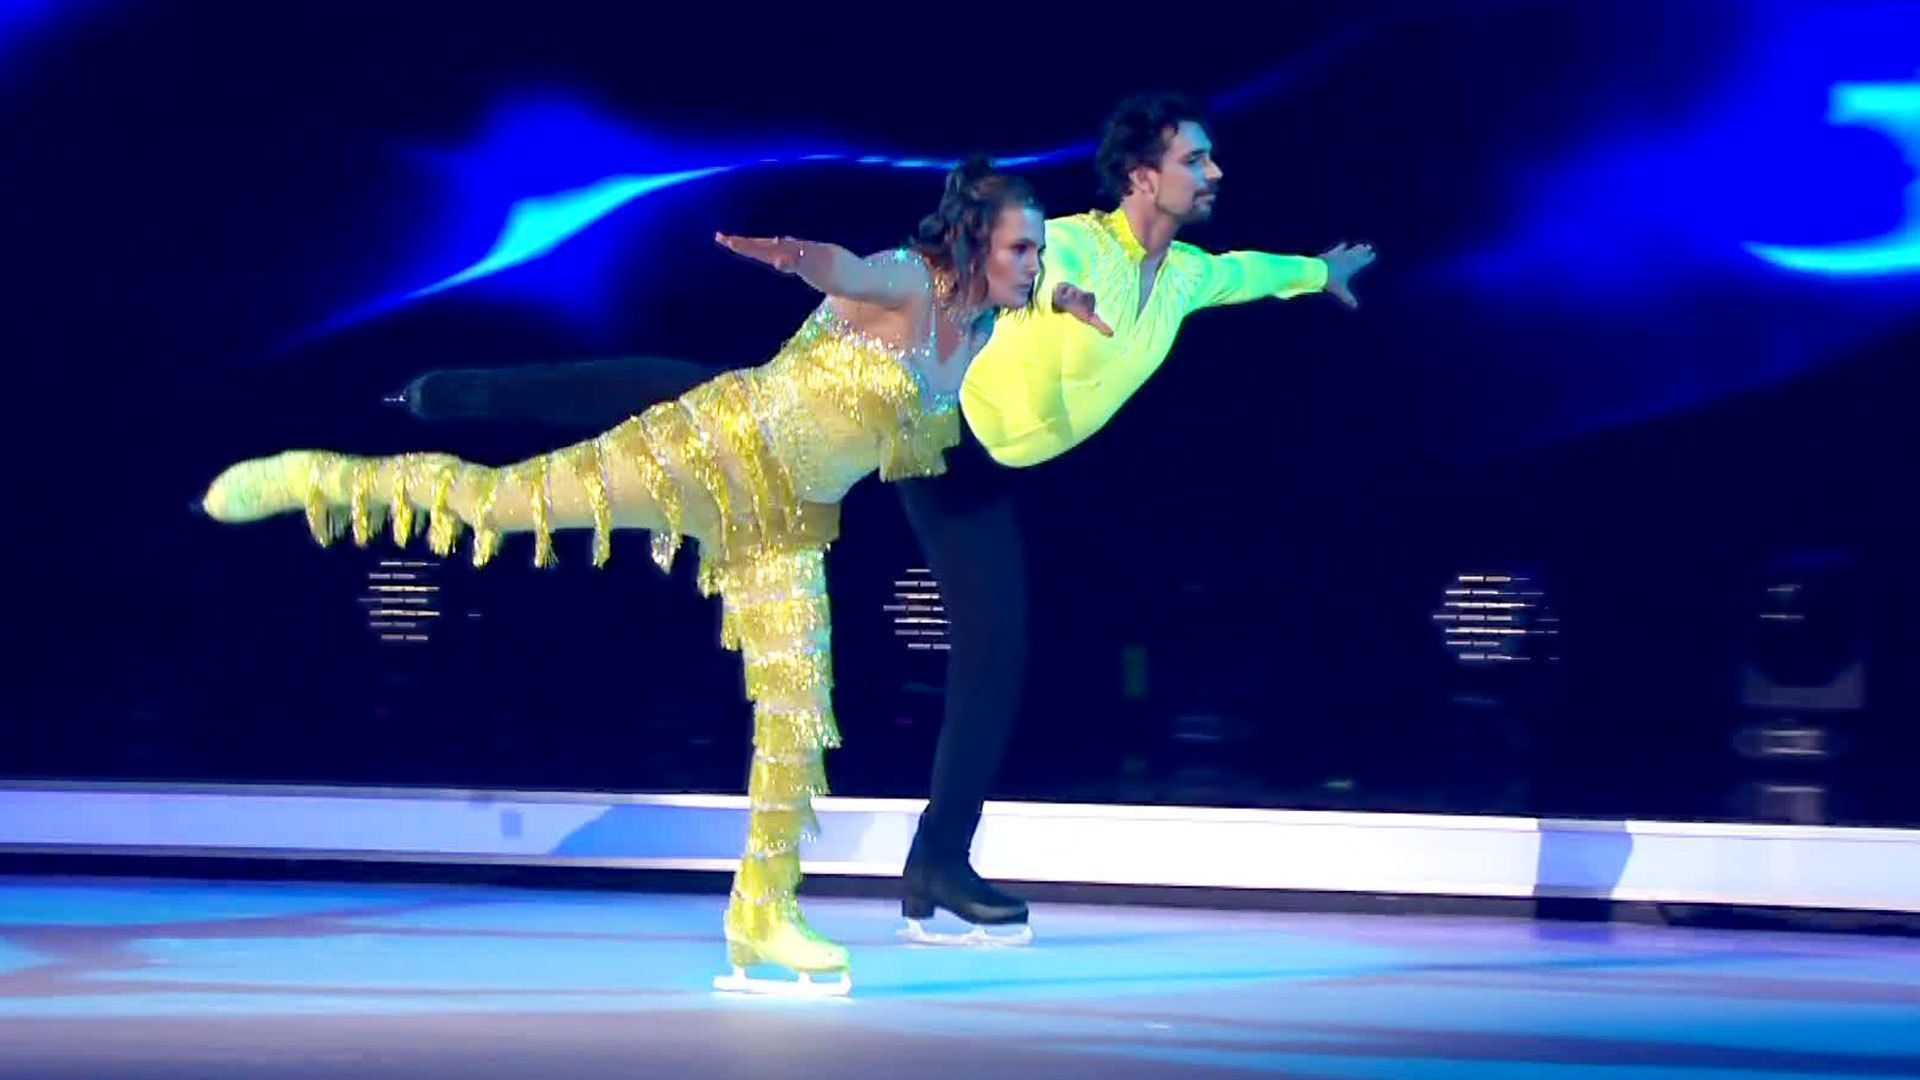 Nadine Angerer: Emotionales Skate Off - Dancing on Ice